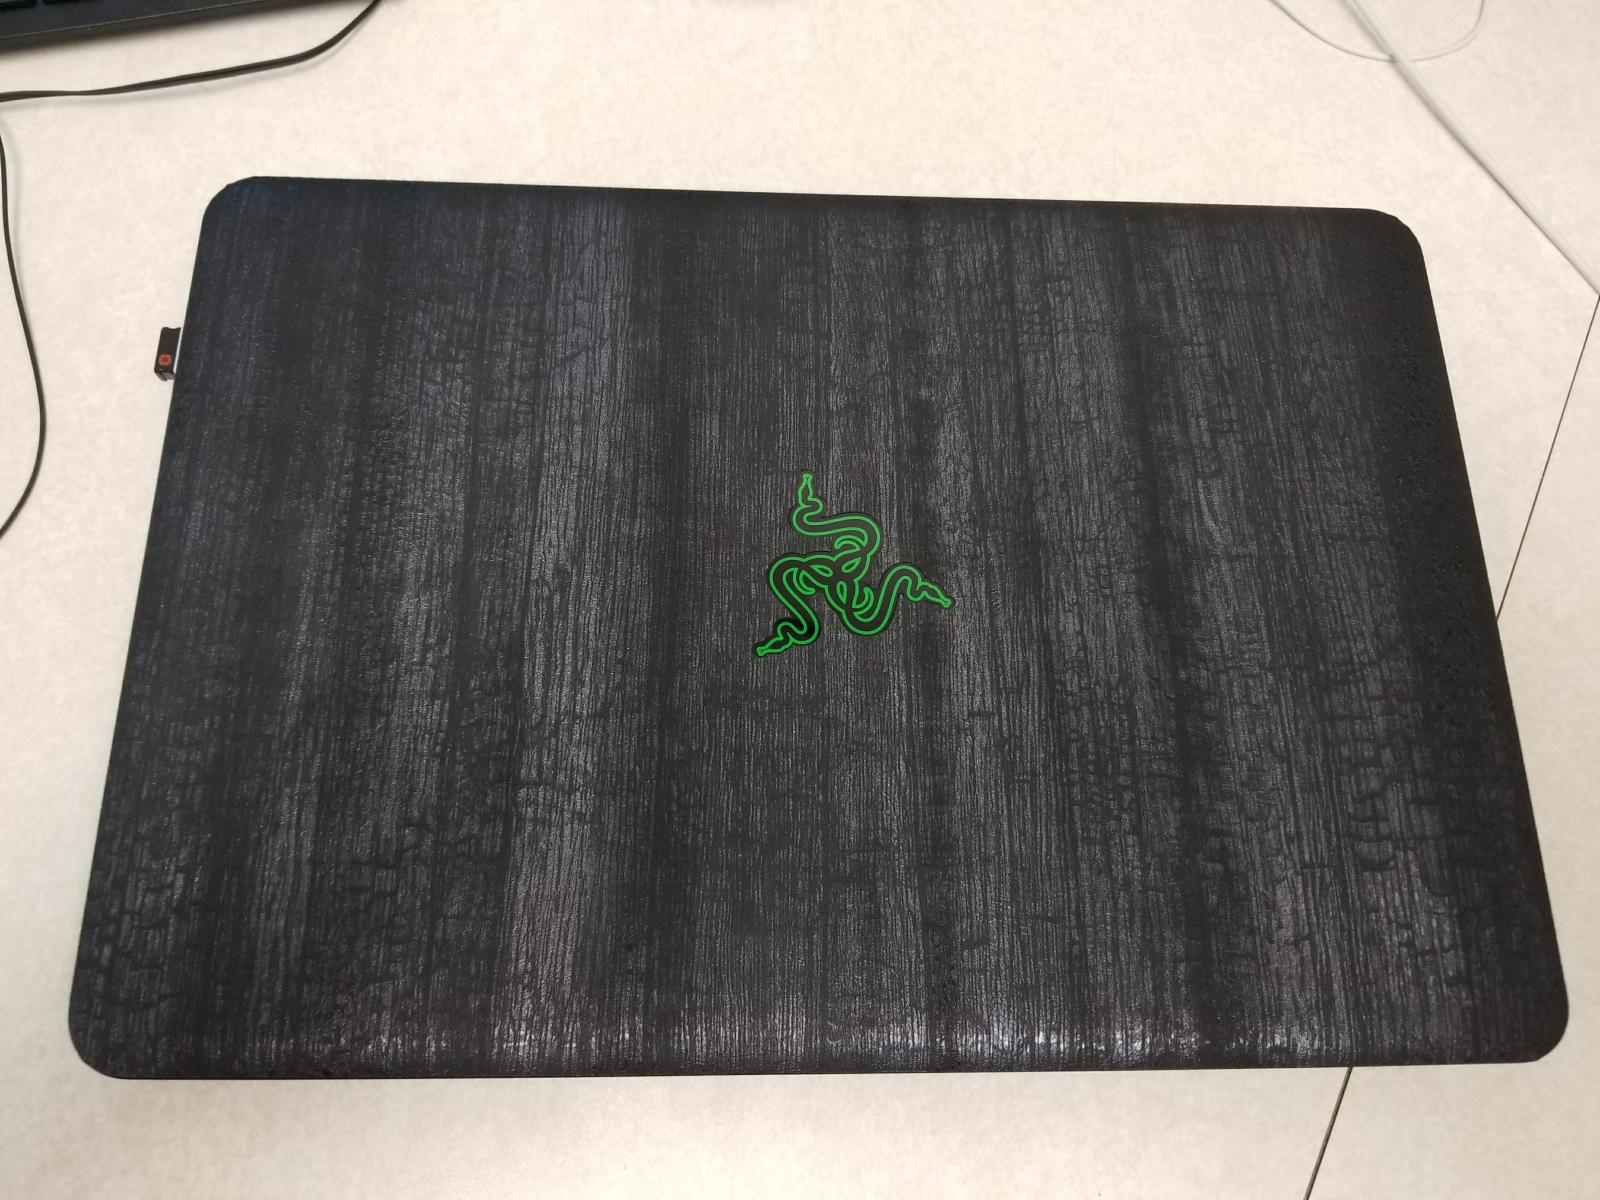 Photo of Razer Blade 2017 FHD